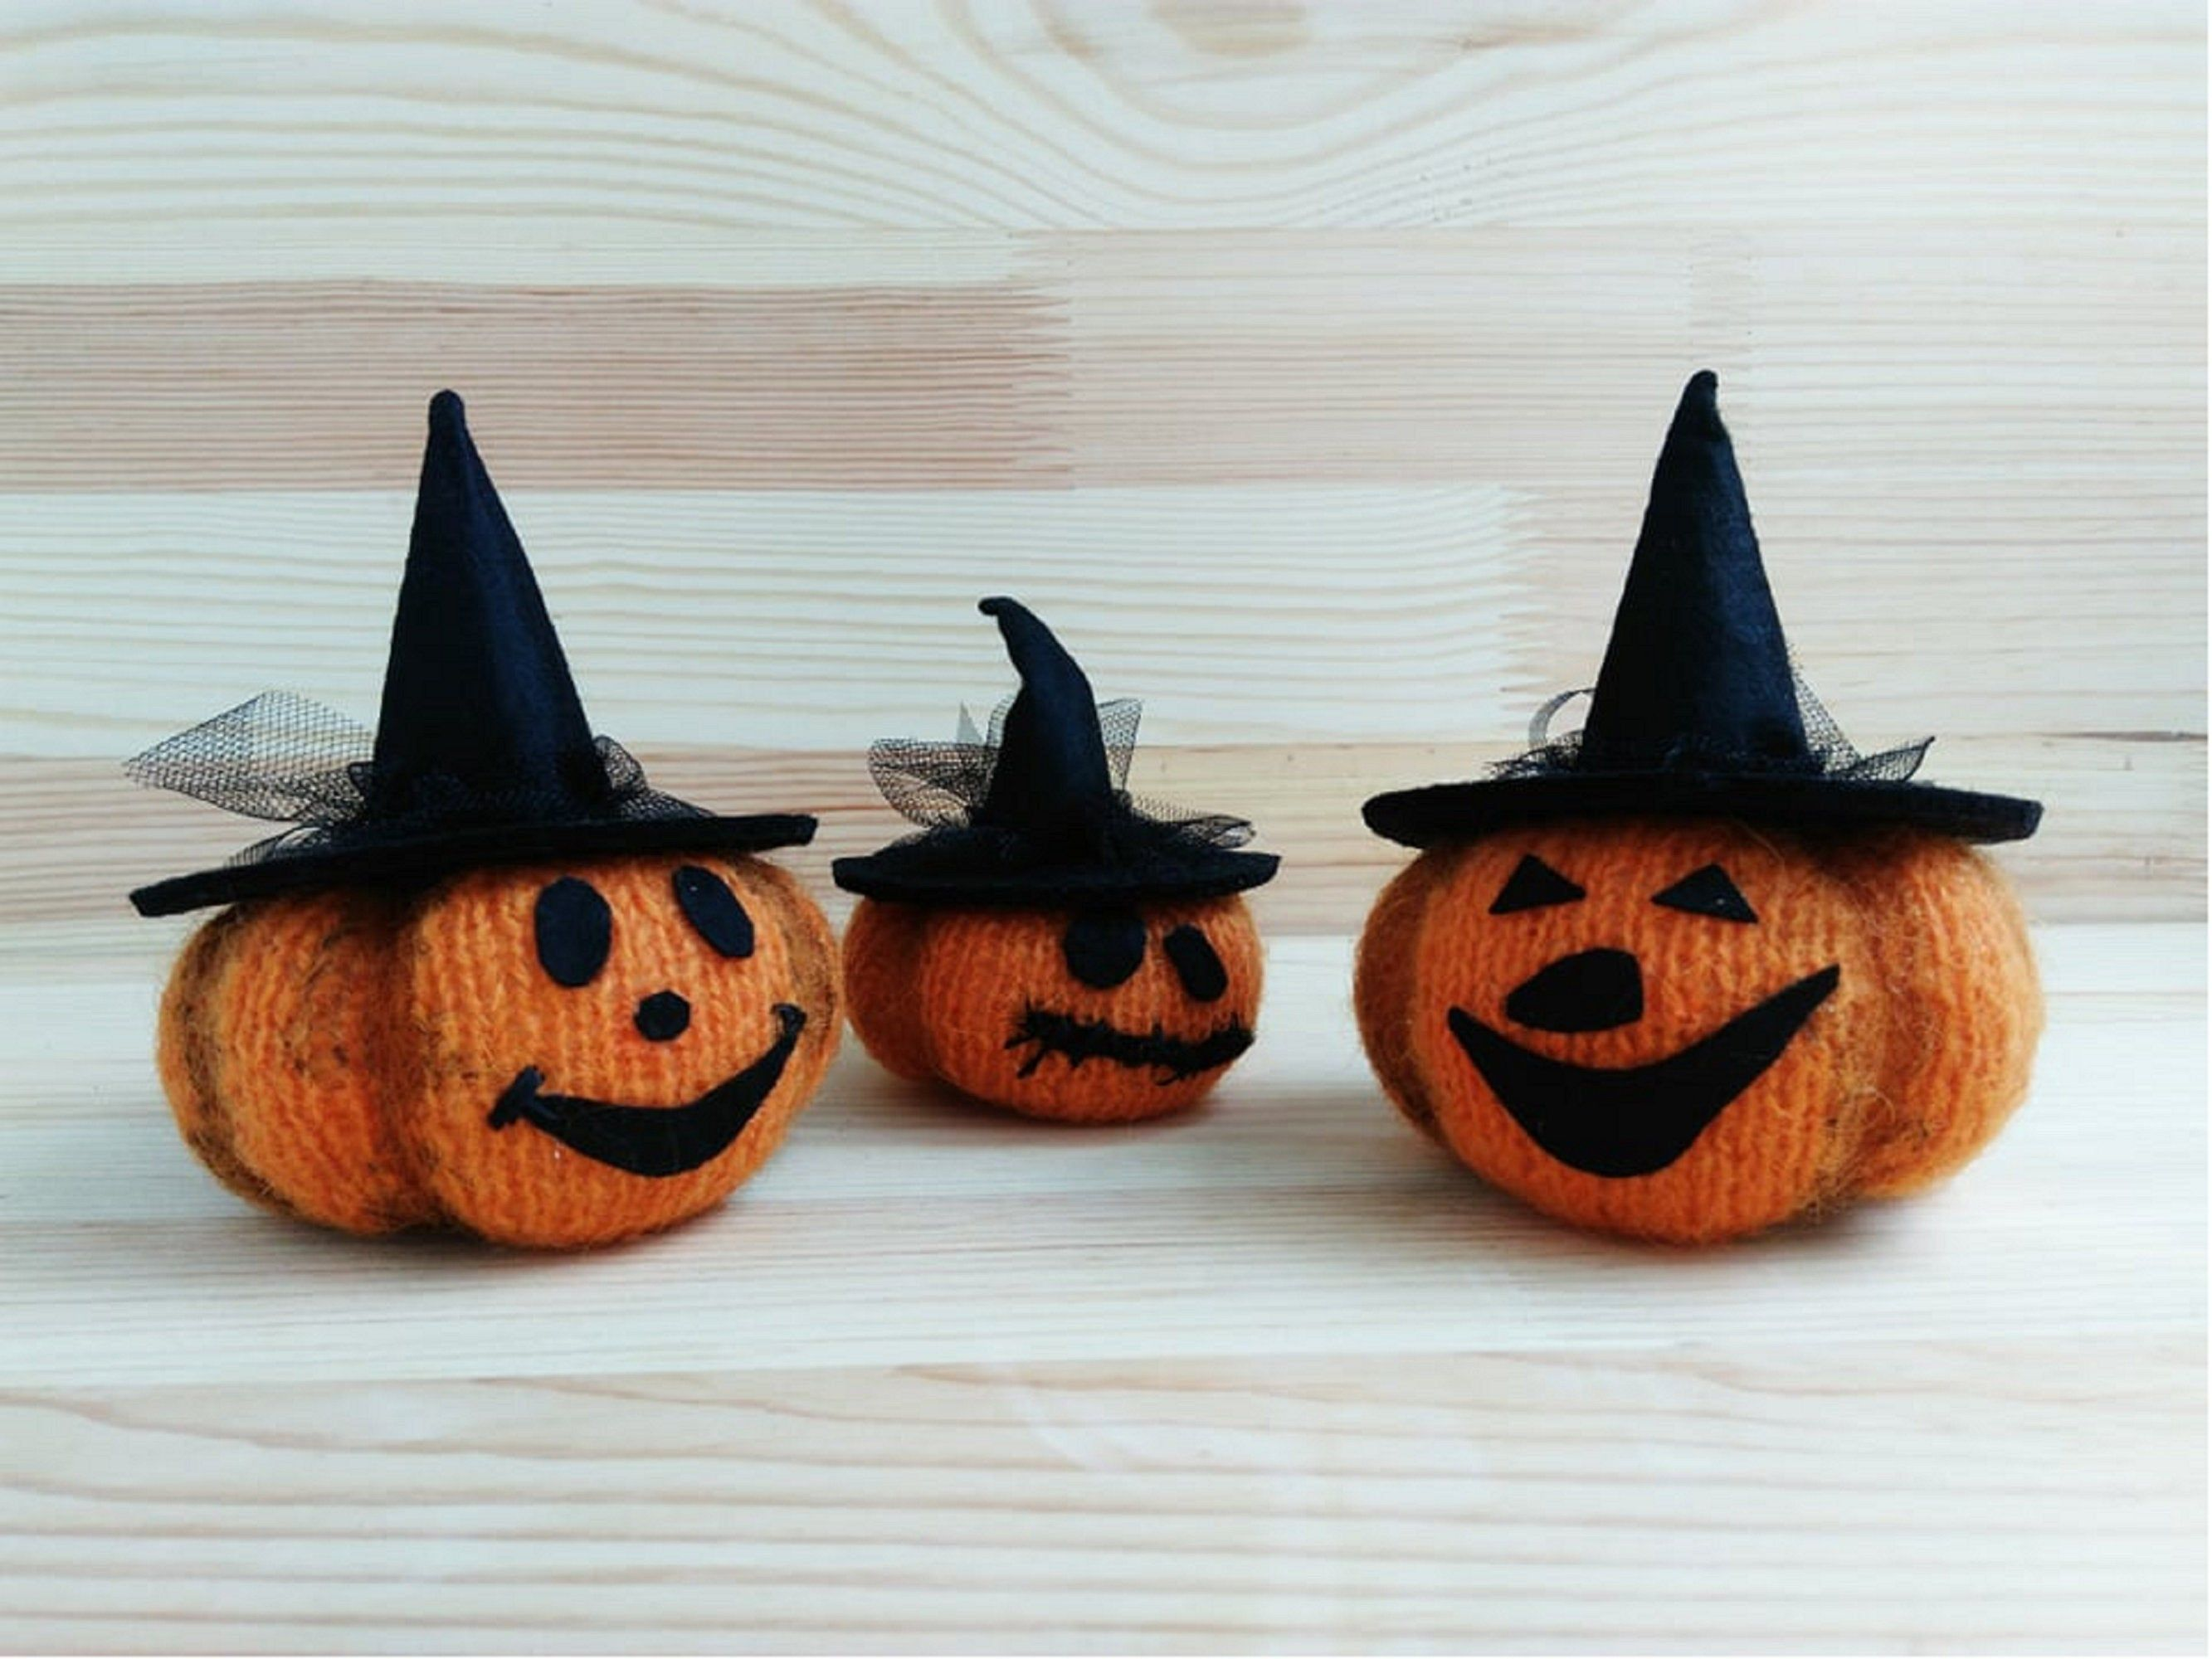 Small knitted halloween pumpkins for decor Set of 3